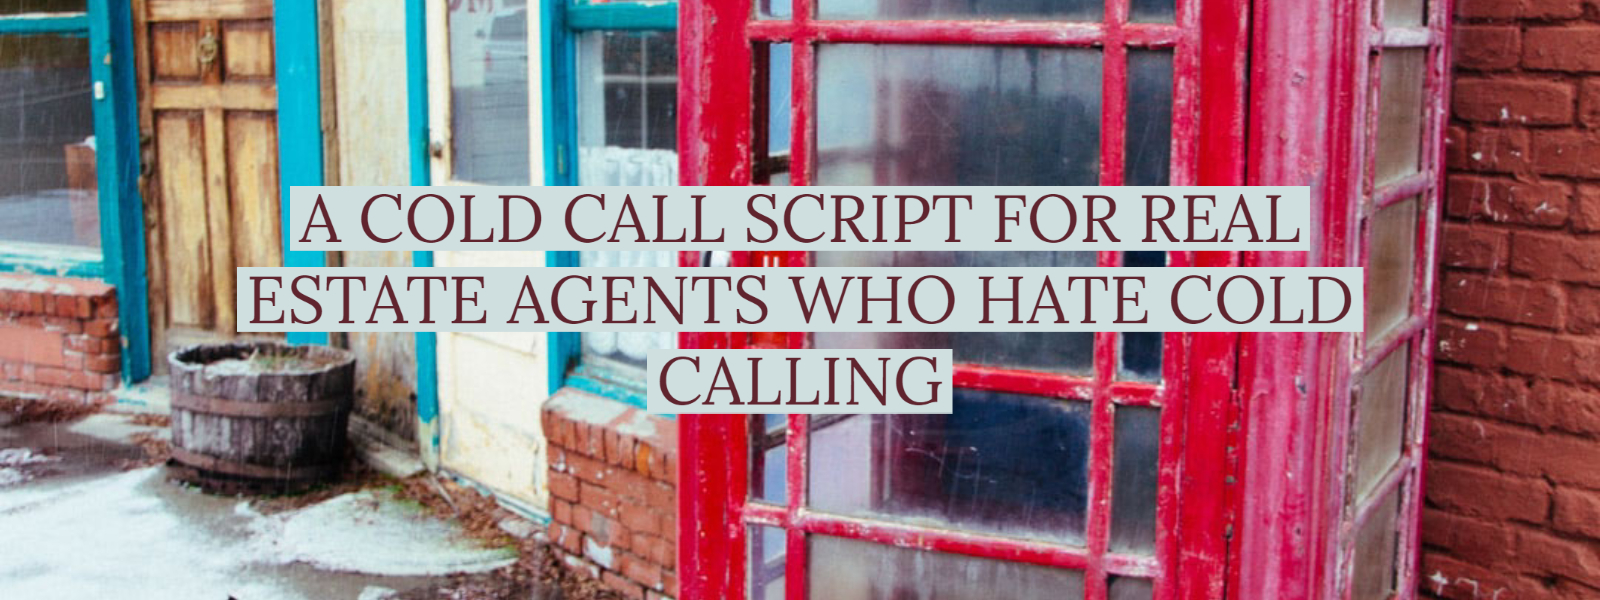 A COLD CALL SCRIPT FOR REAL ESTATE AGENTS WHO HATE COLD CALLING